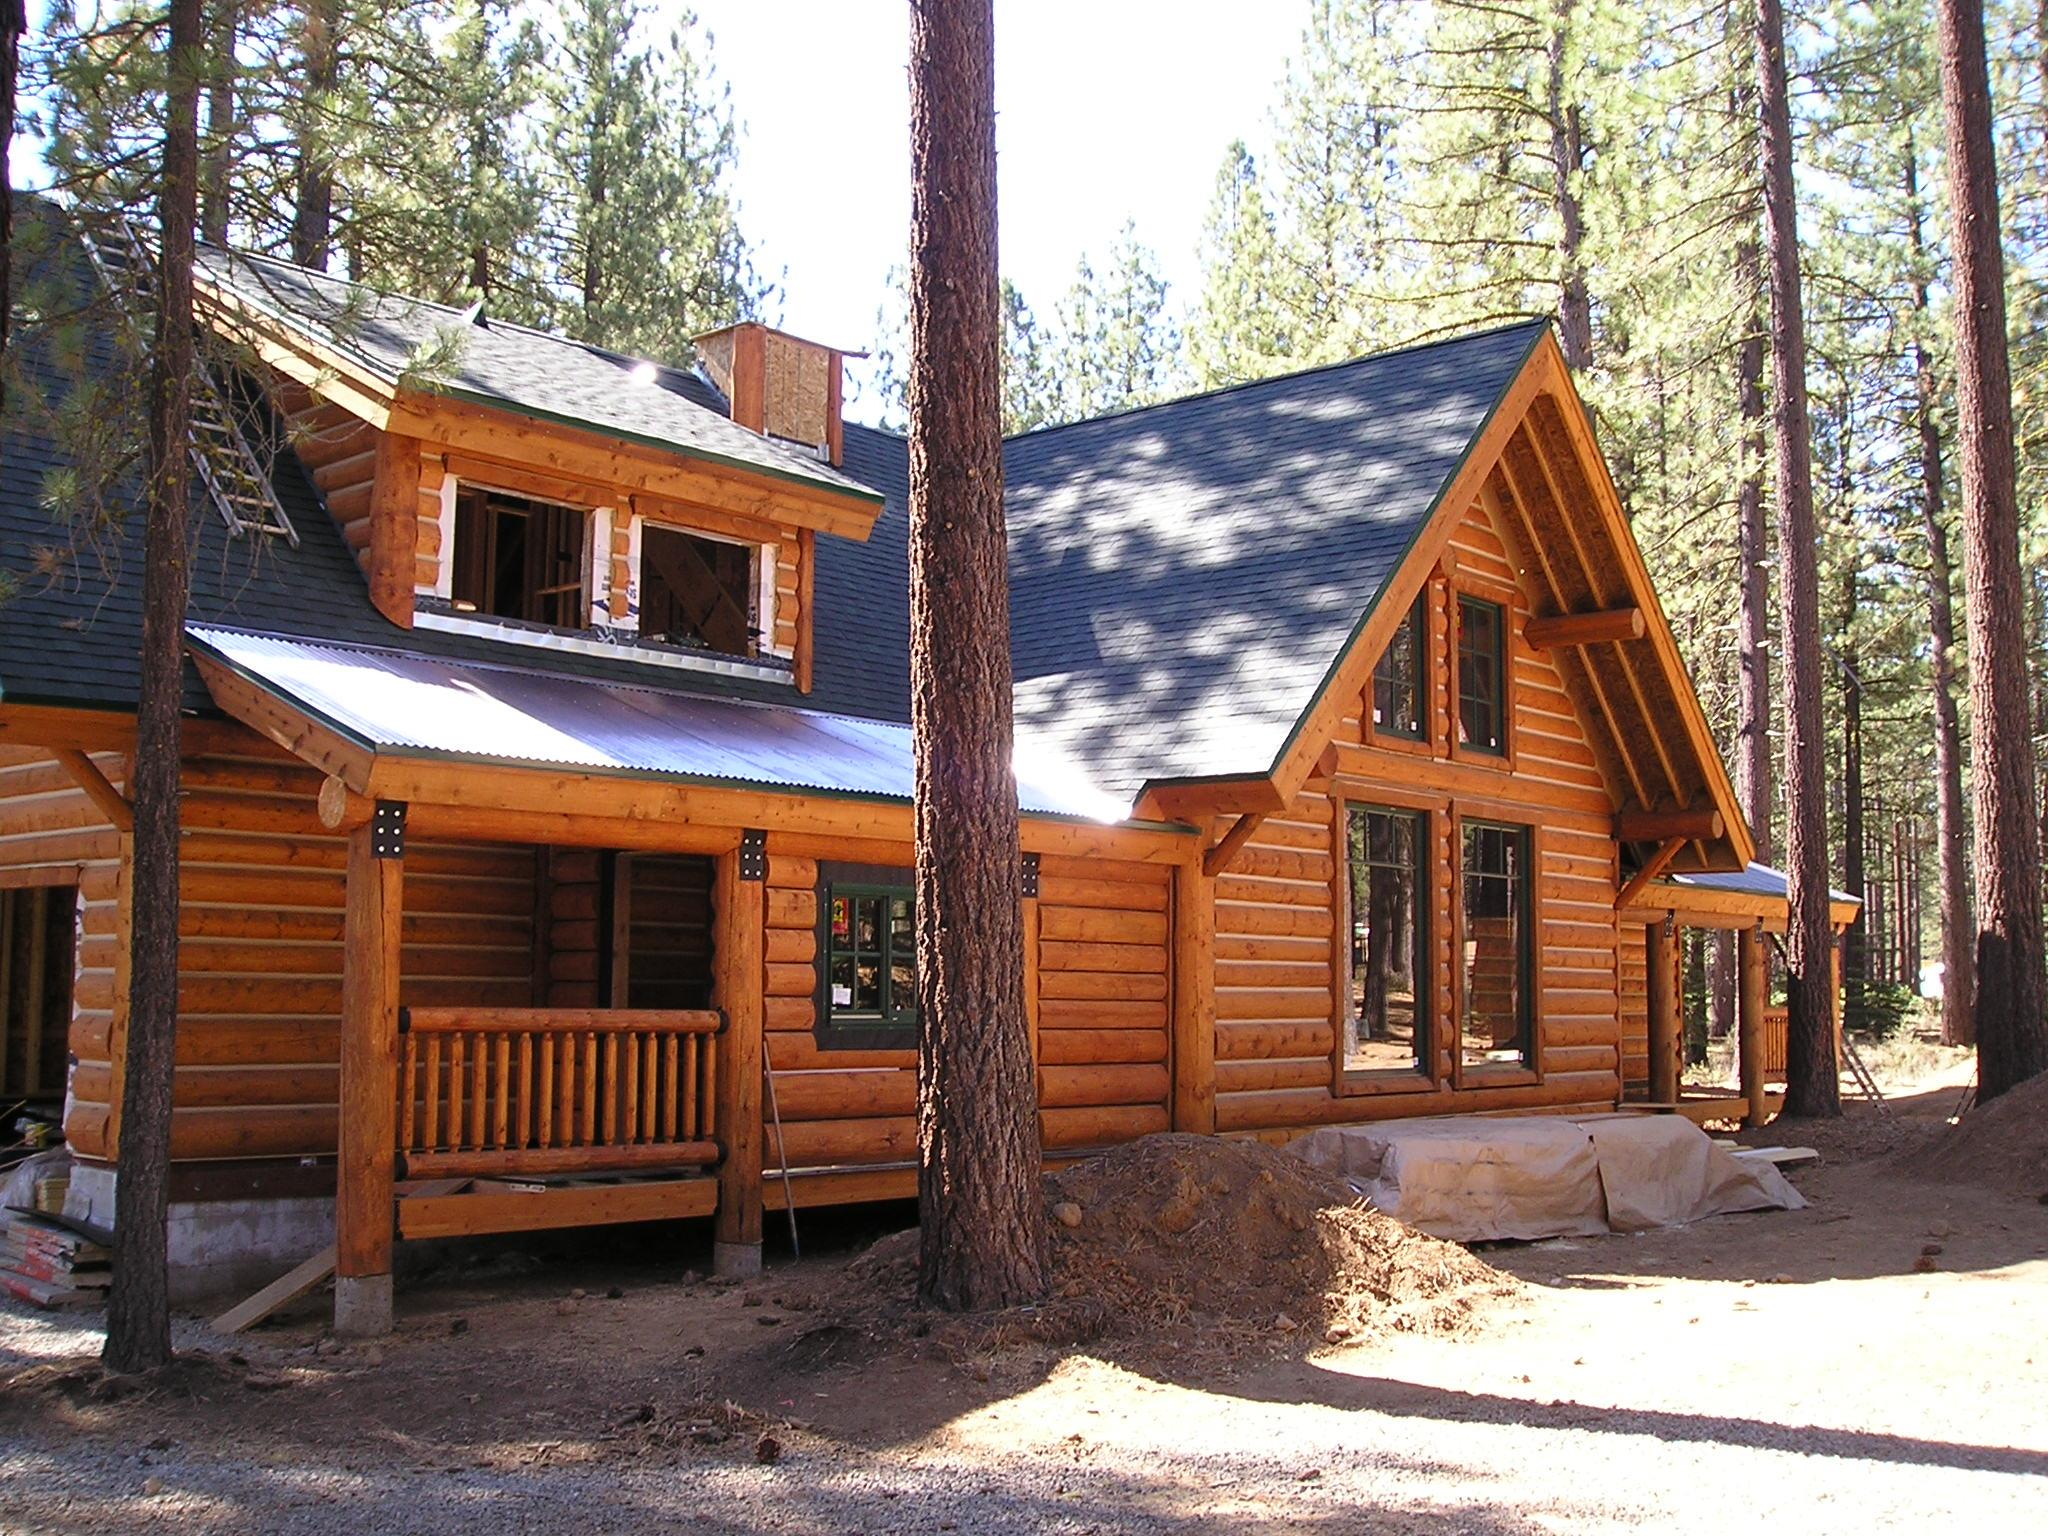 turn key log home, custom log home,truckee log homes,building calif log homes,log home dealer,utah nevada,california,log home builders truckee